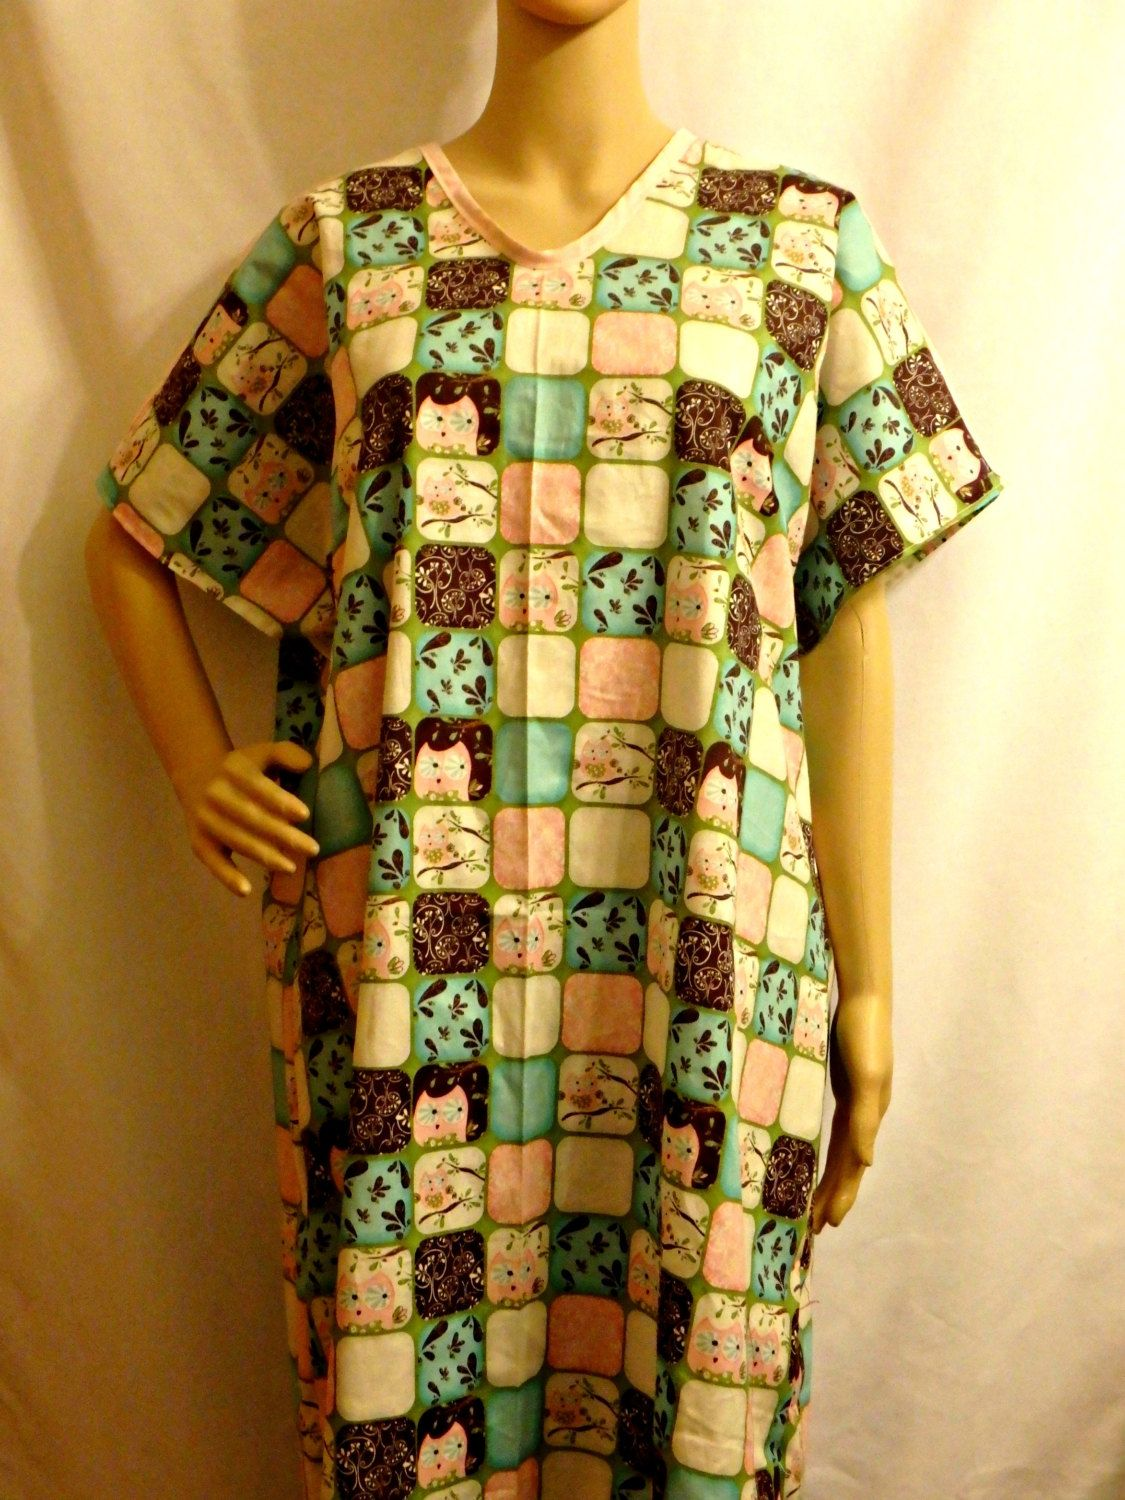 Hospital Gown for Bed bound Post Surgery COTTON Gown Fits Regular ...